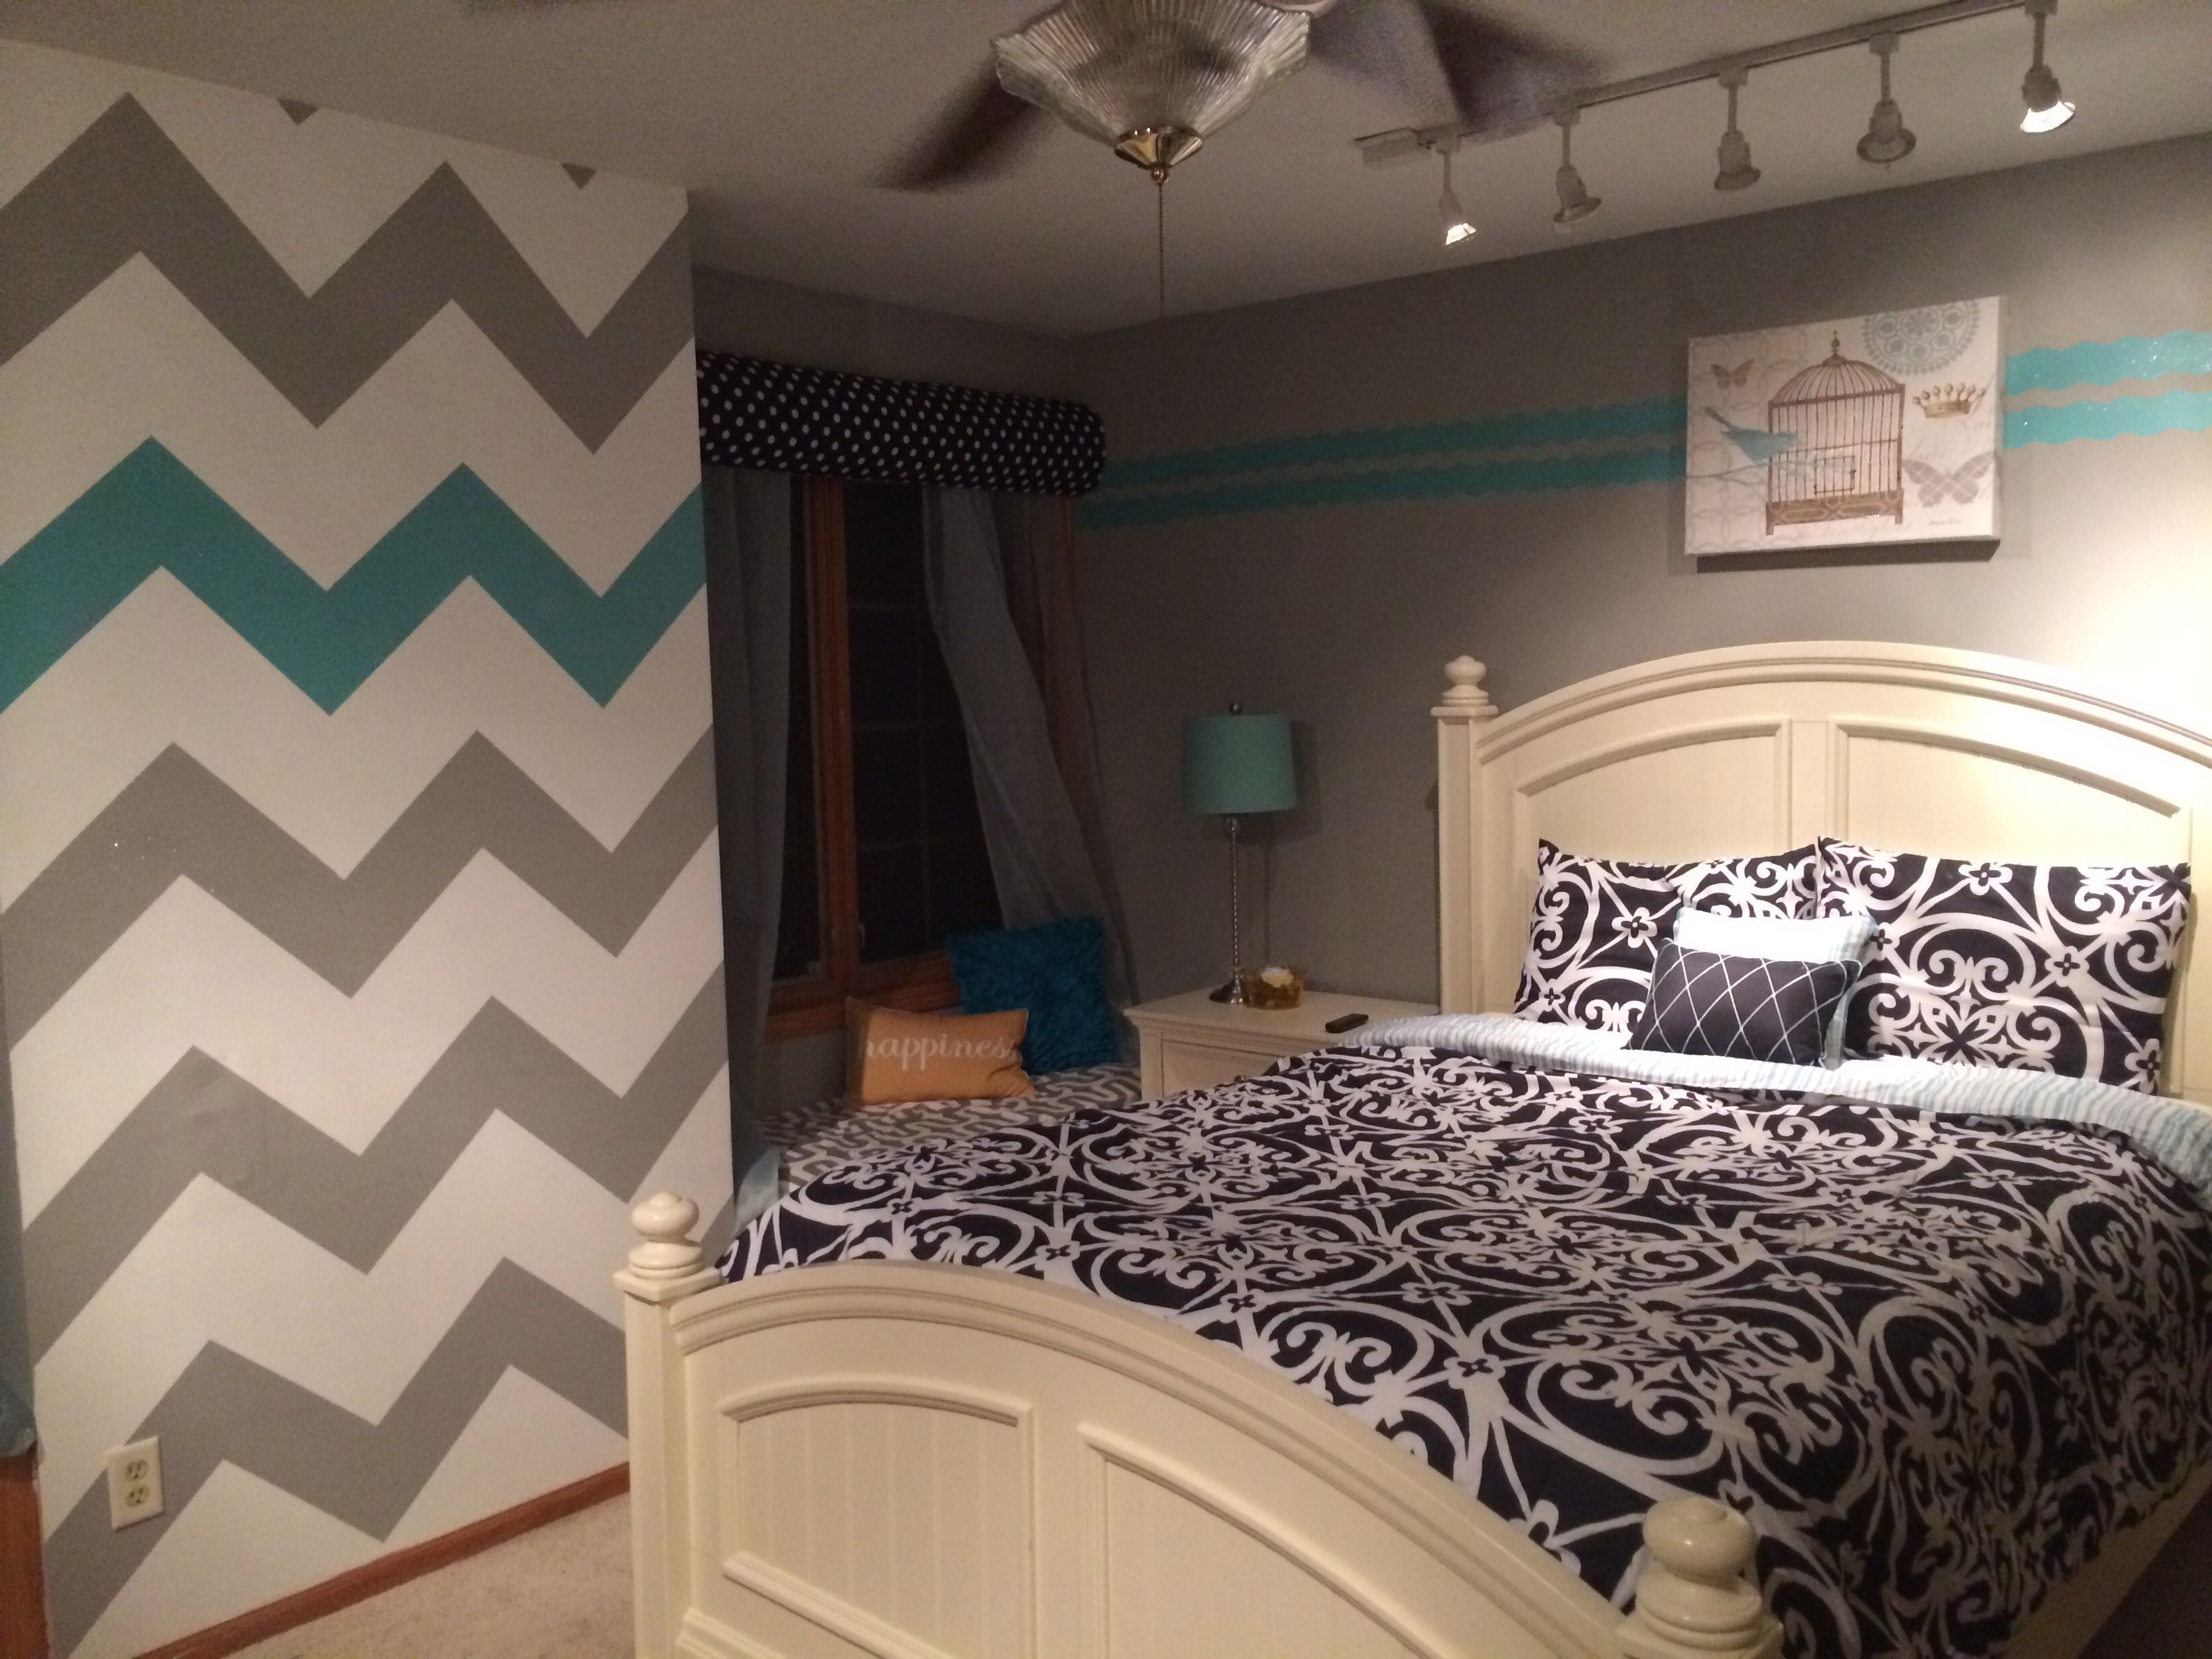 Teenage Girl Wall Decor Ideas Teen Girl Room Chevron Wall Blue Gray D R E A M B E D R